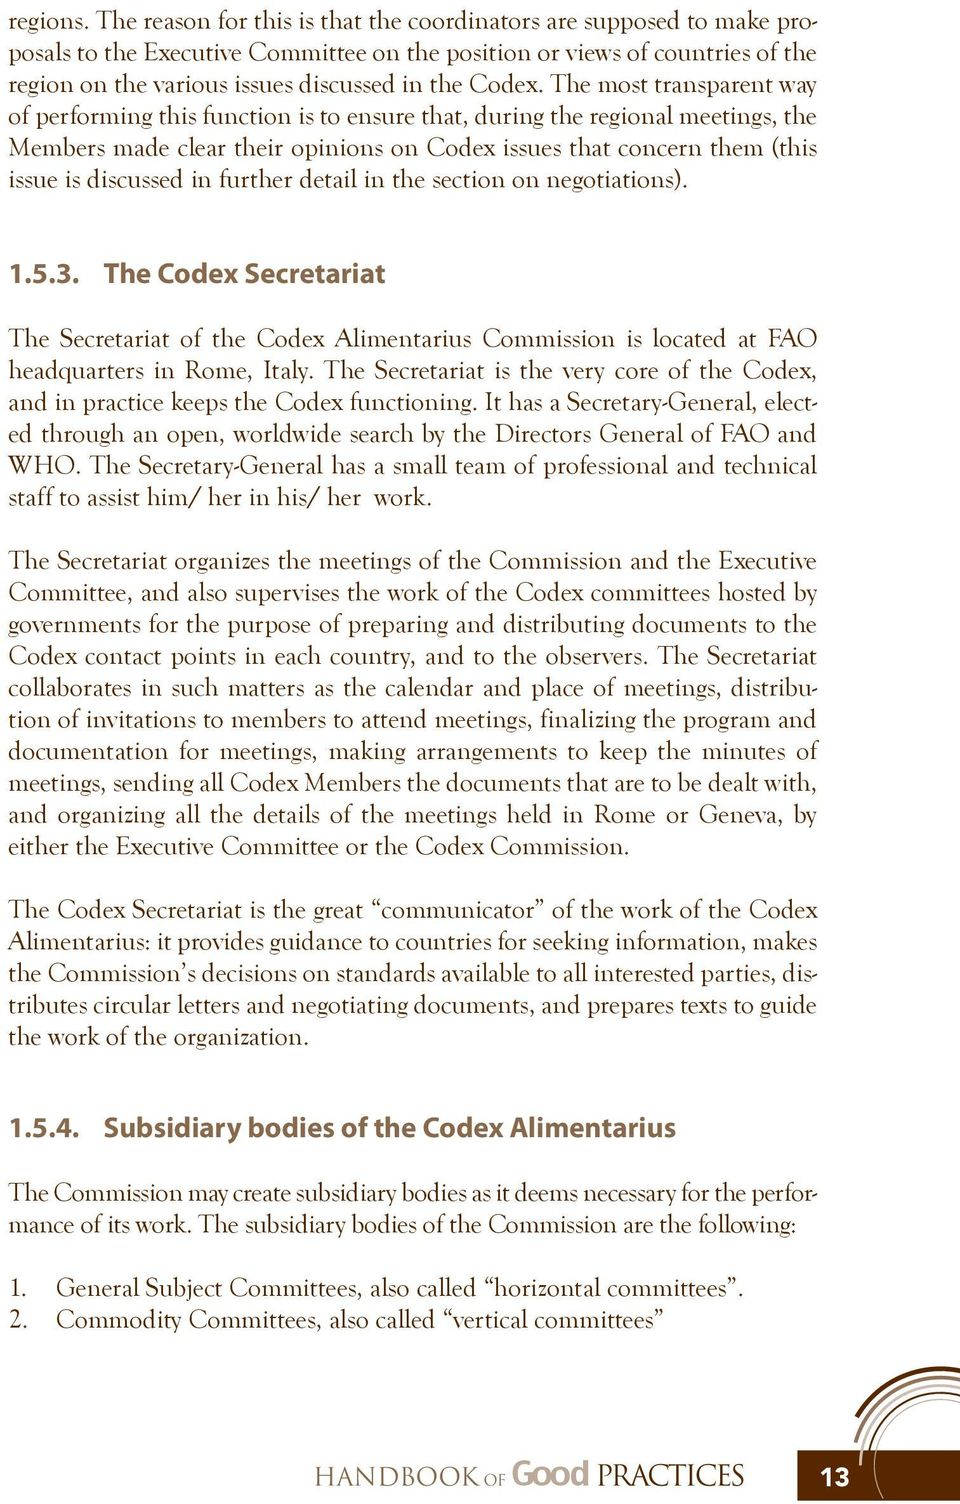 The most transparent way of performing this function is to ensure that, during the regional meetings, the Members made clear their opinions on Codex issues that concern them (this issue is discussed